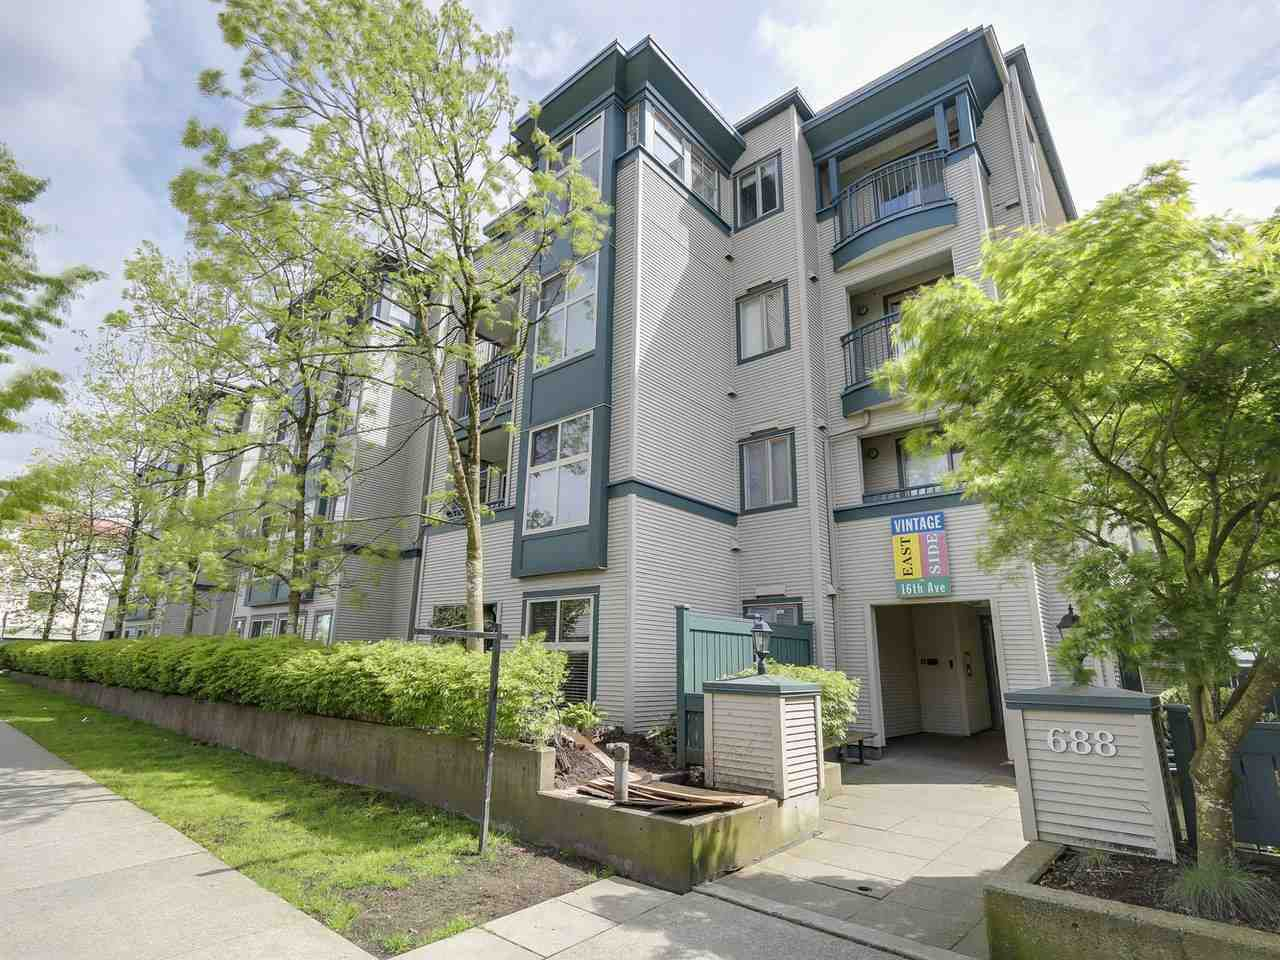 "Main Photo: 209 688 E 16TH Avenue in Vancouver: Fraser VE Condo for sale in ""VINTAGE EASTSIDE"" (Vancouver East)  : MLS®# R2168610"